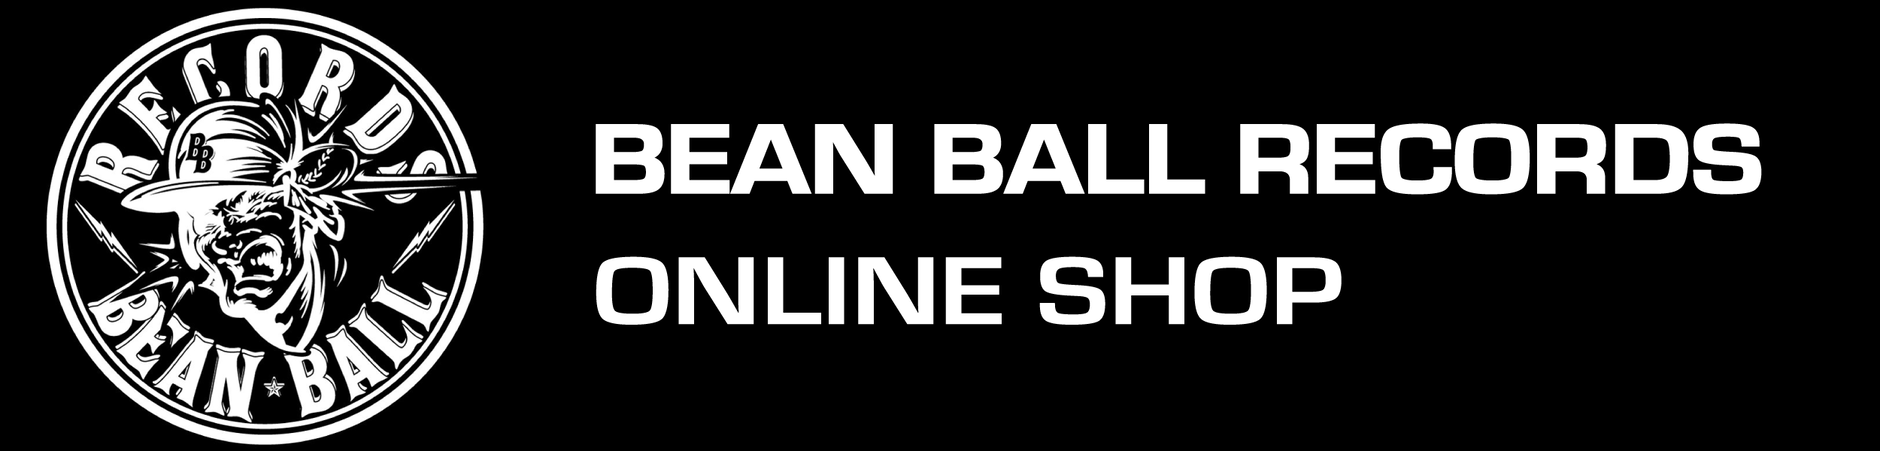 BEAN BALL RECORDS ONLINE SHOP